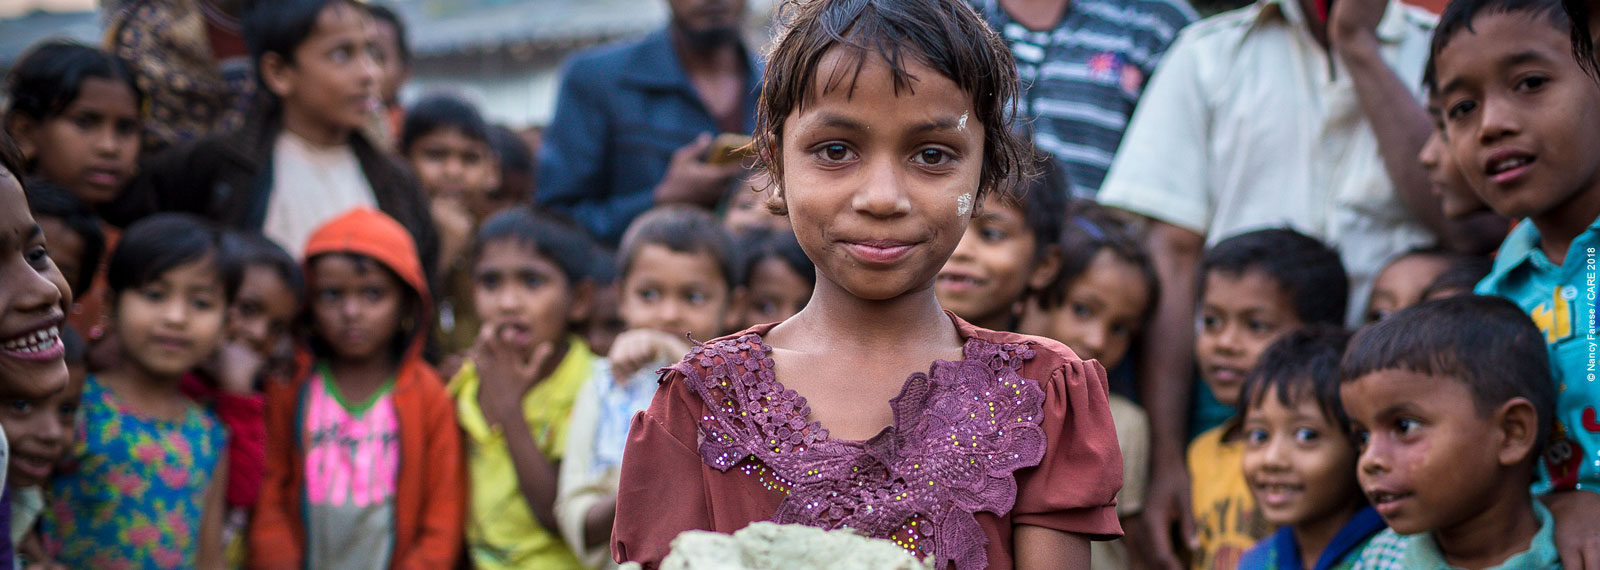 Girl and children in refugee camp in Bangladesh